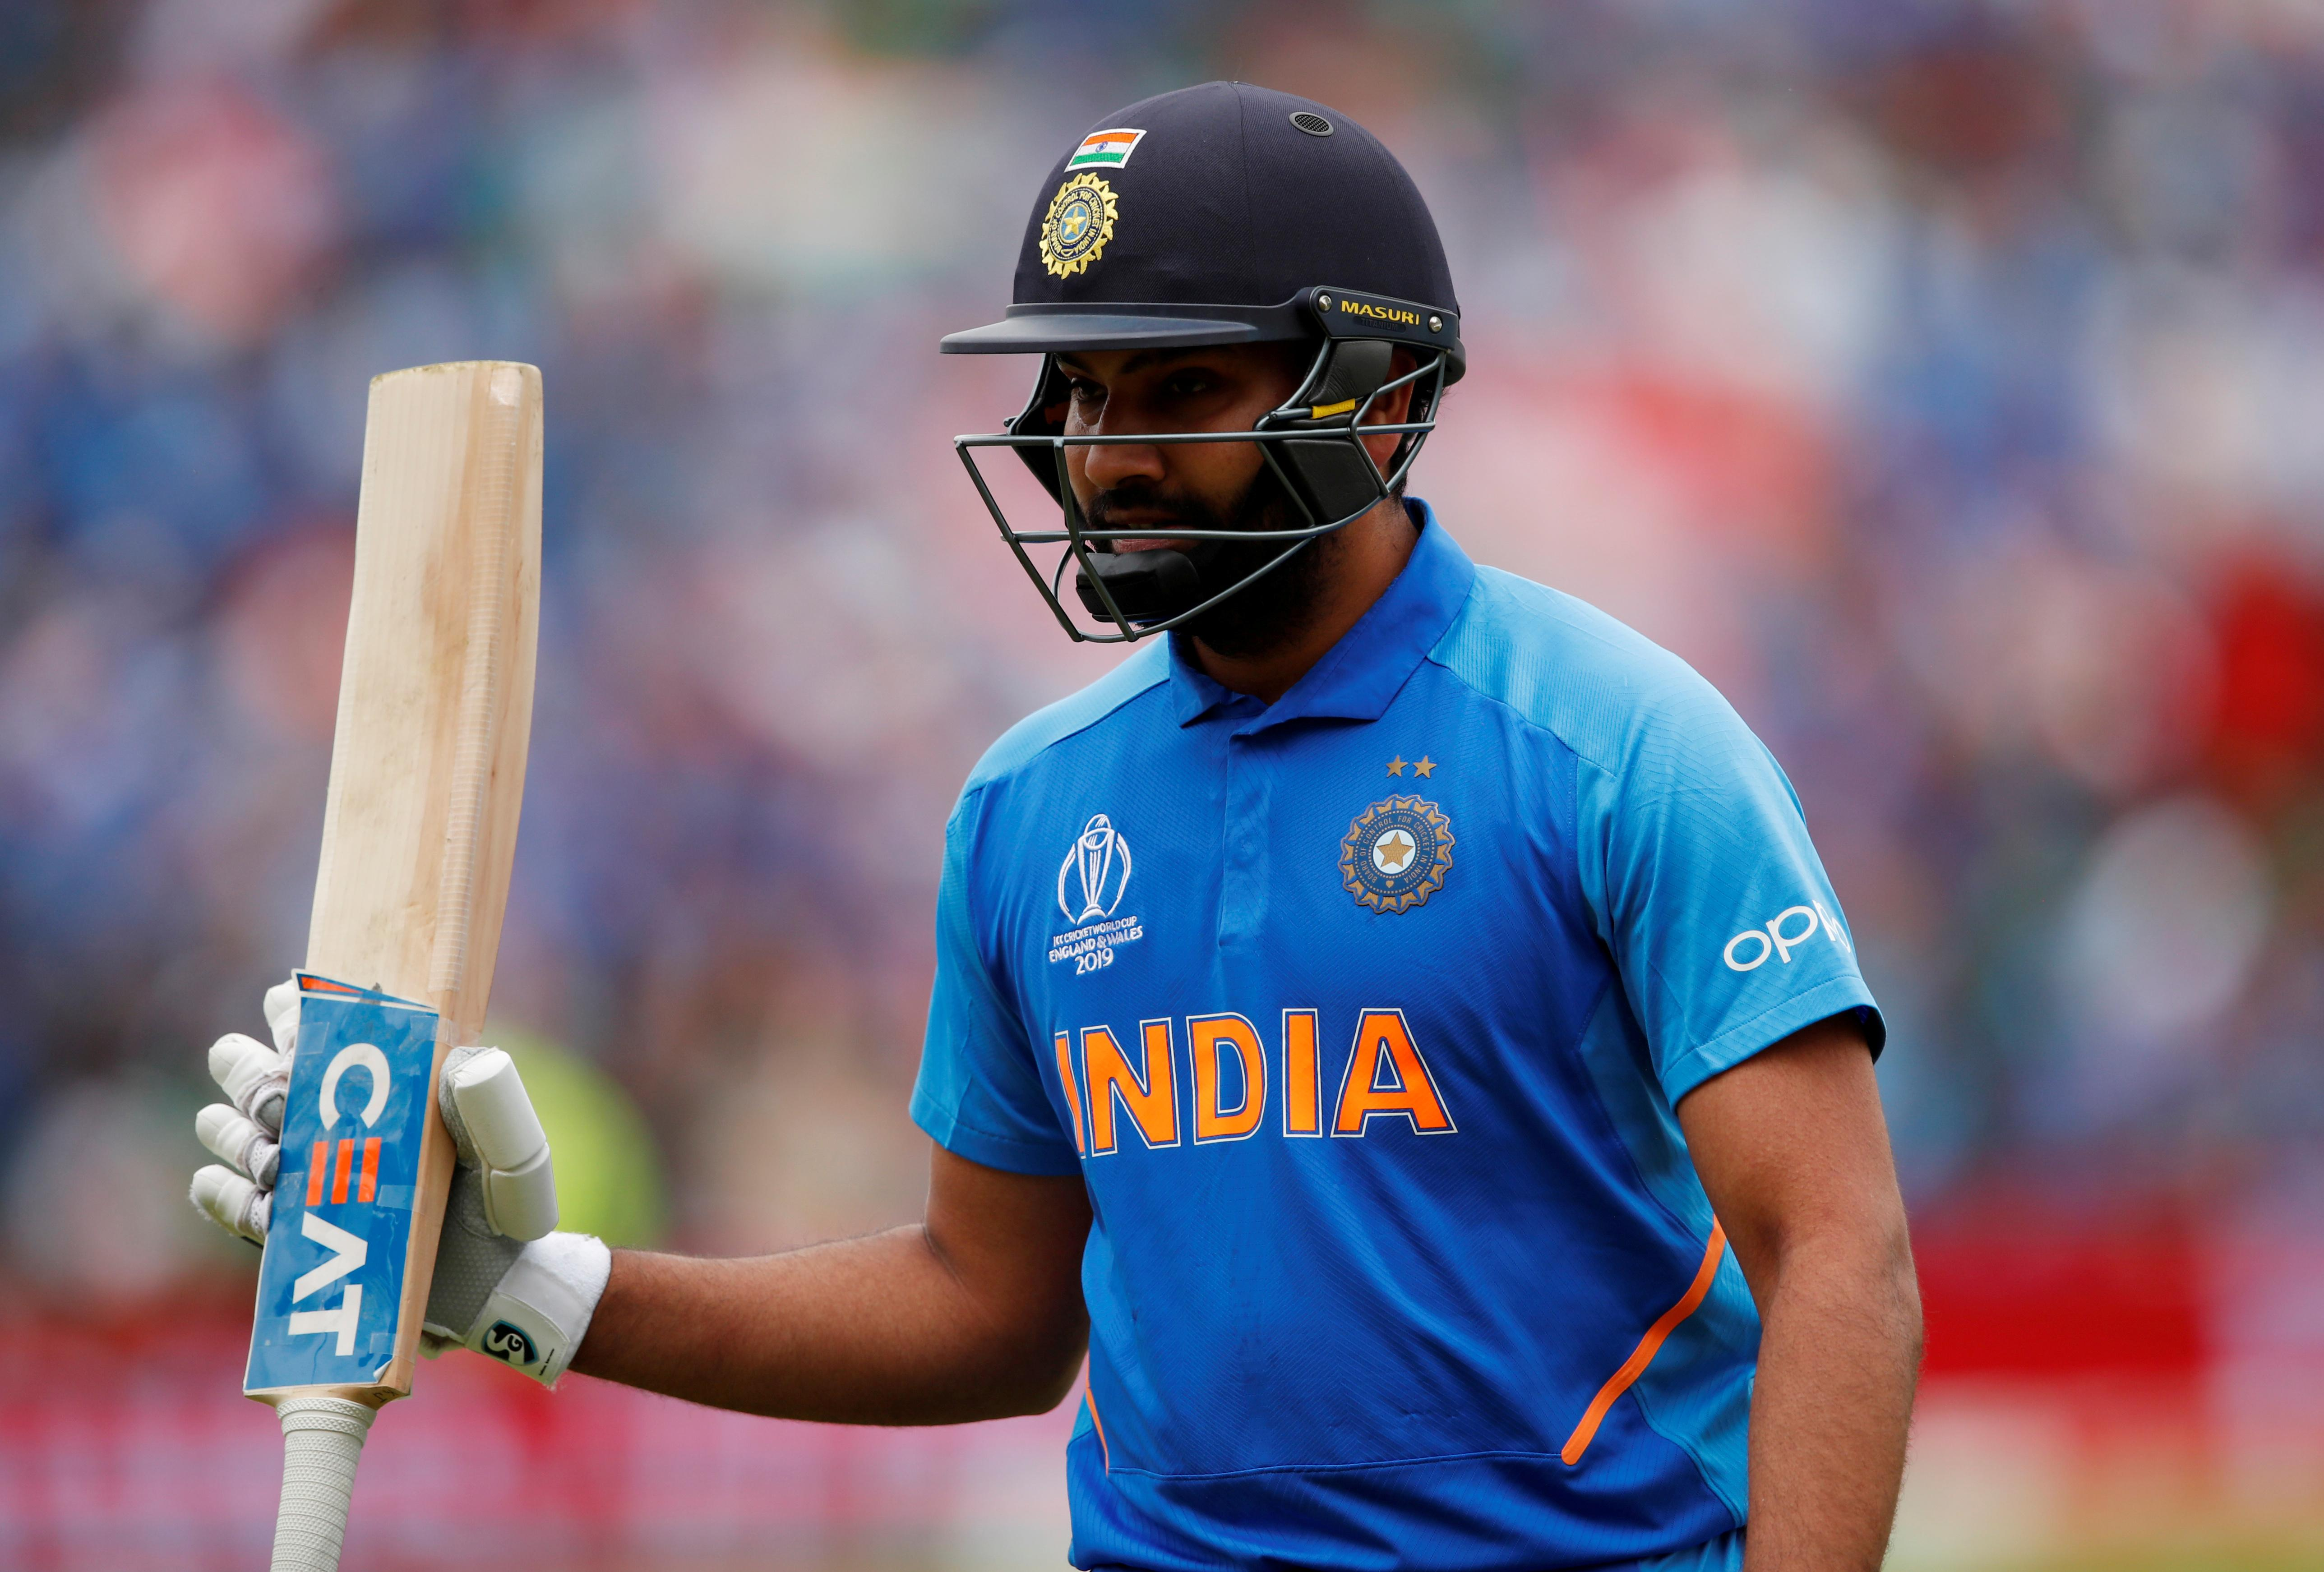 Cricket: Play Rohit Sharma as test opener, Sourav Ganguly tells India